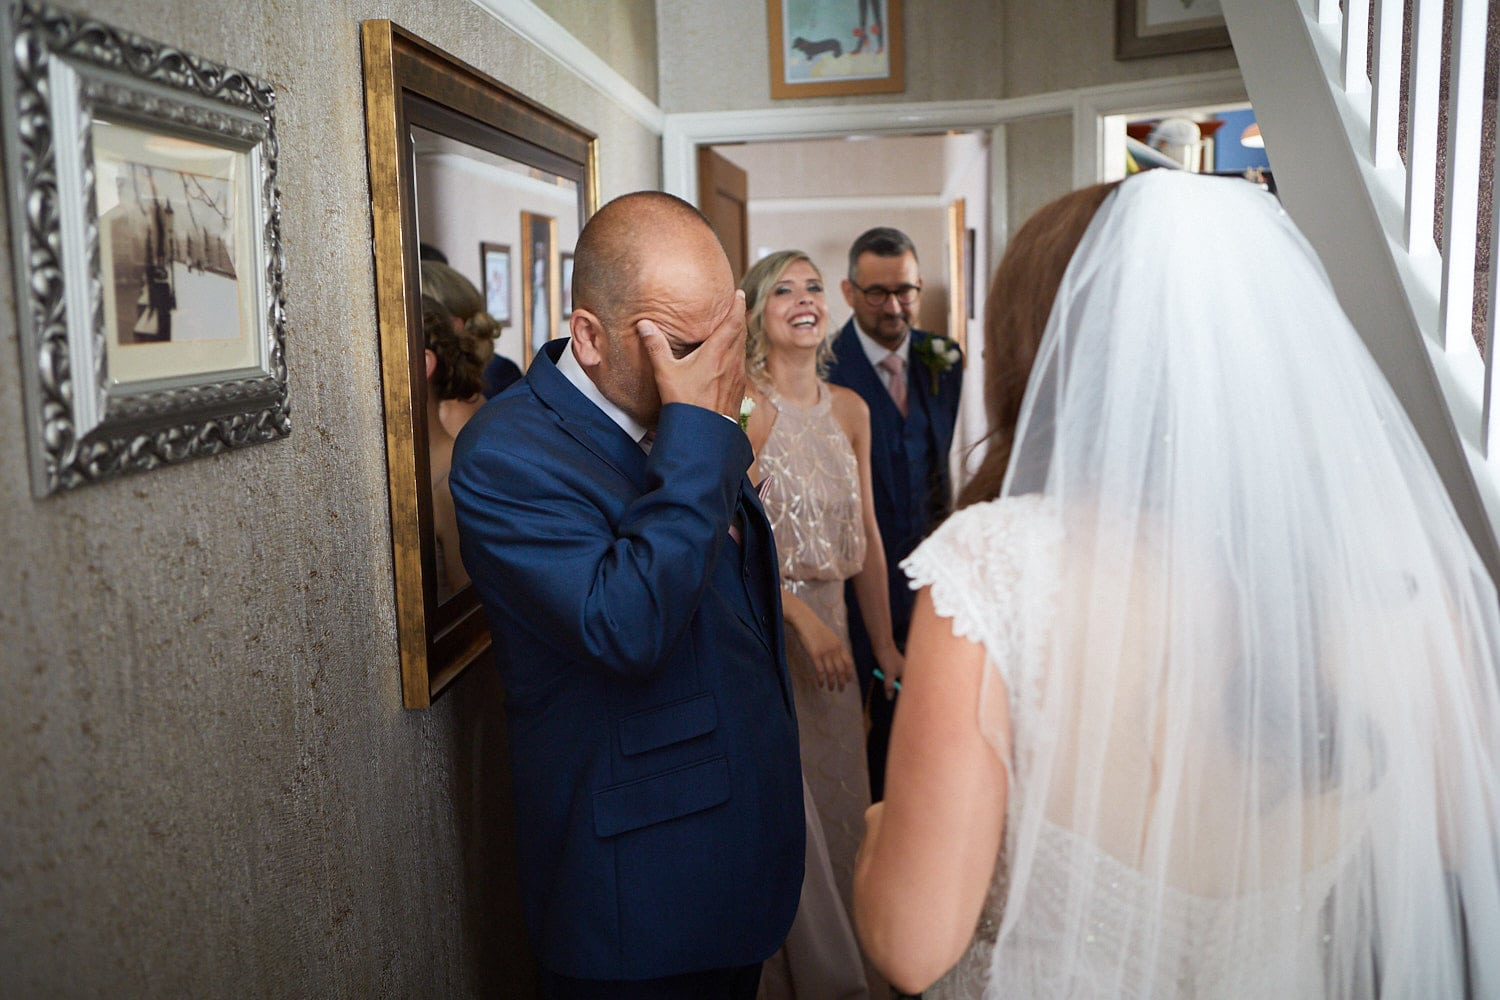 A father wipes his tears as he sees his daughter in her wedding dress for the first time